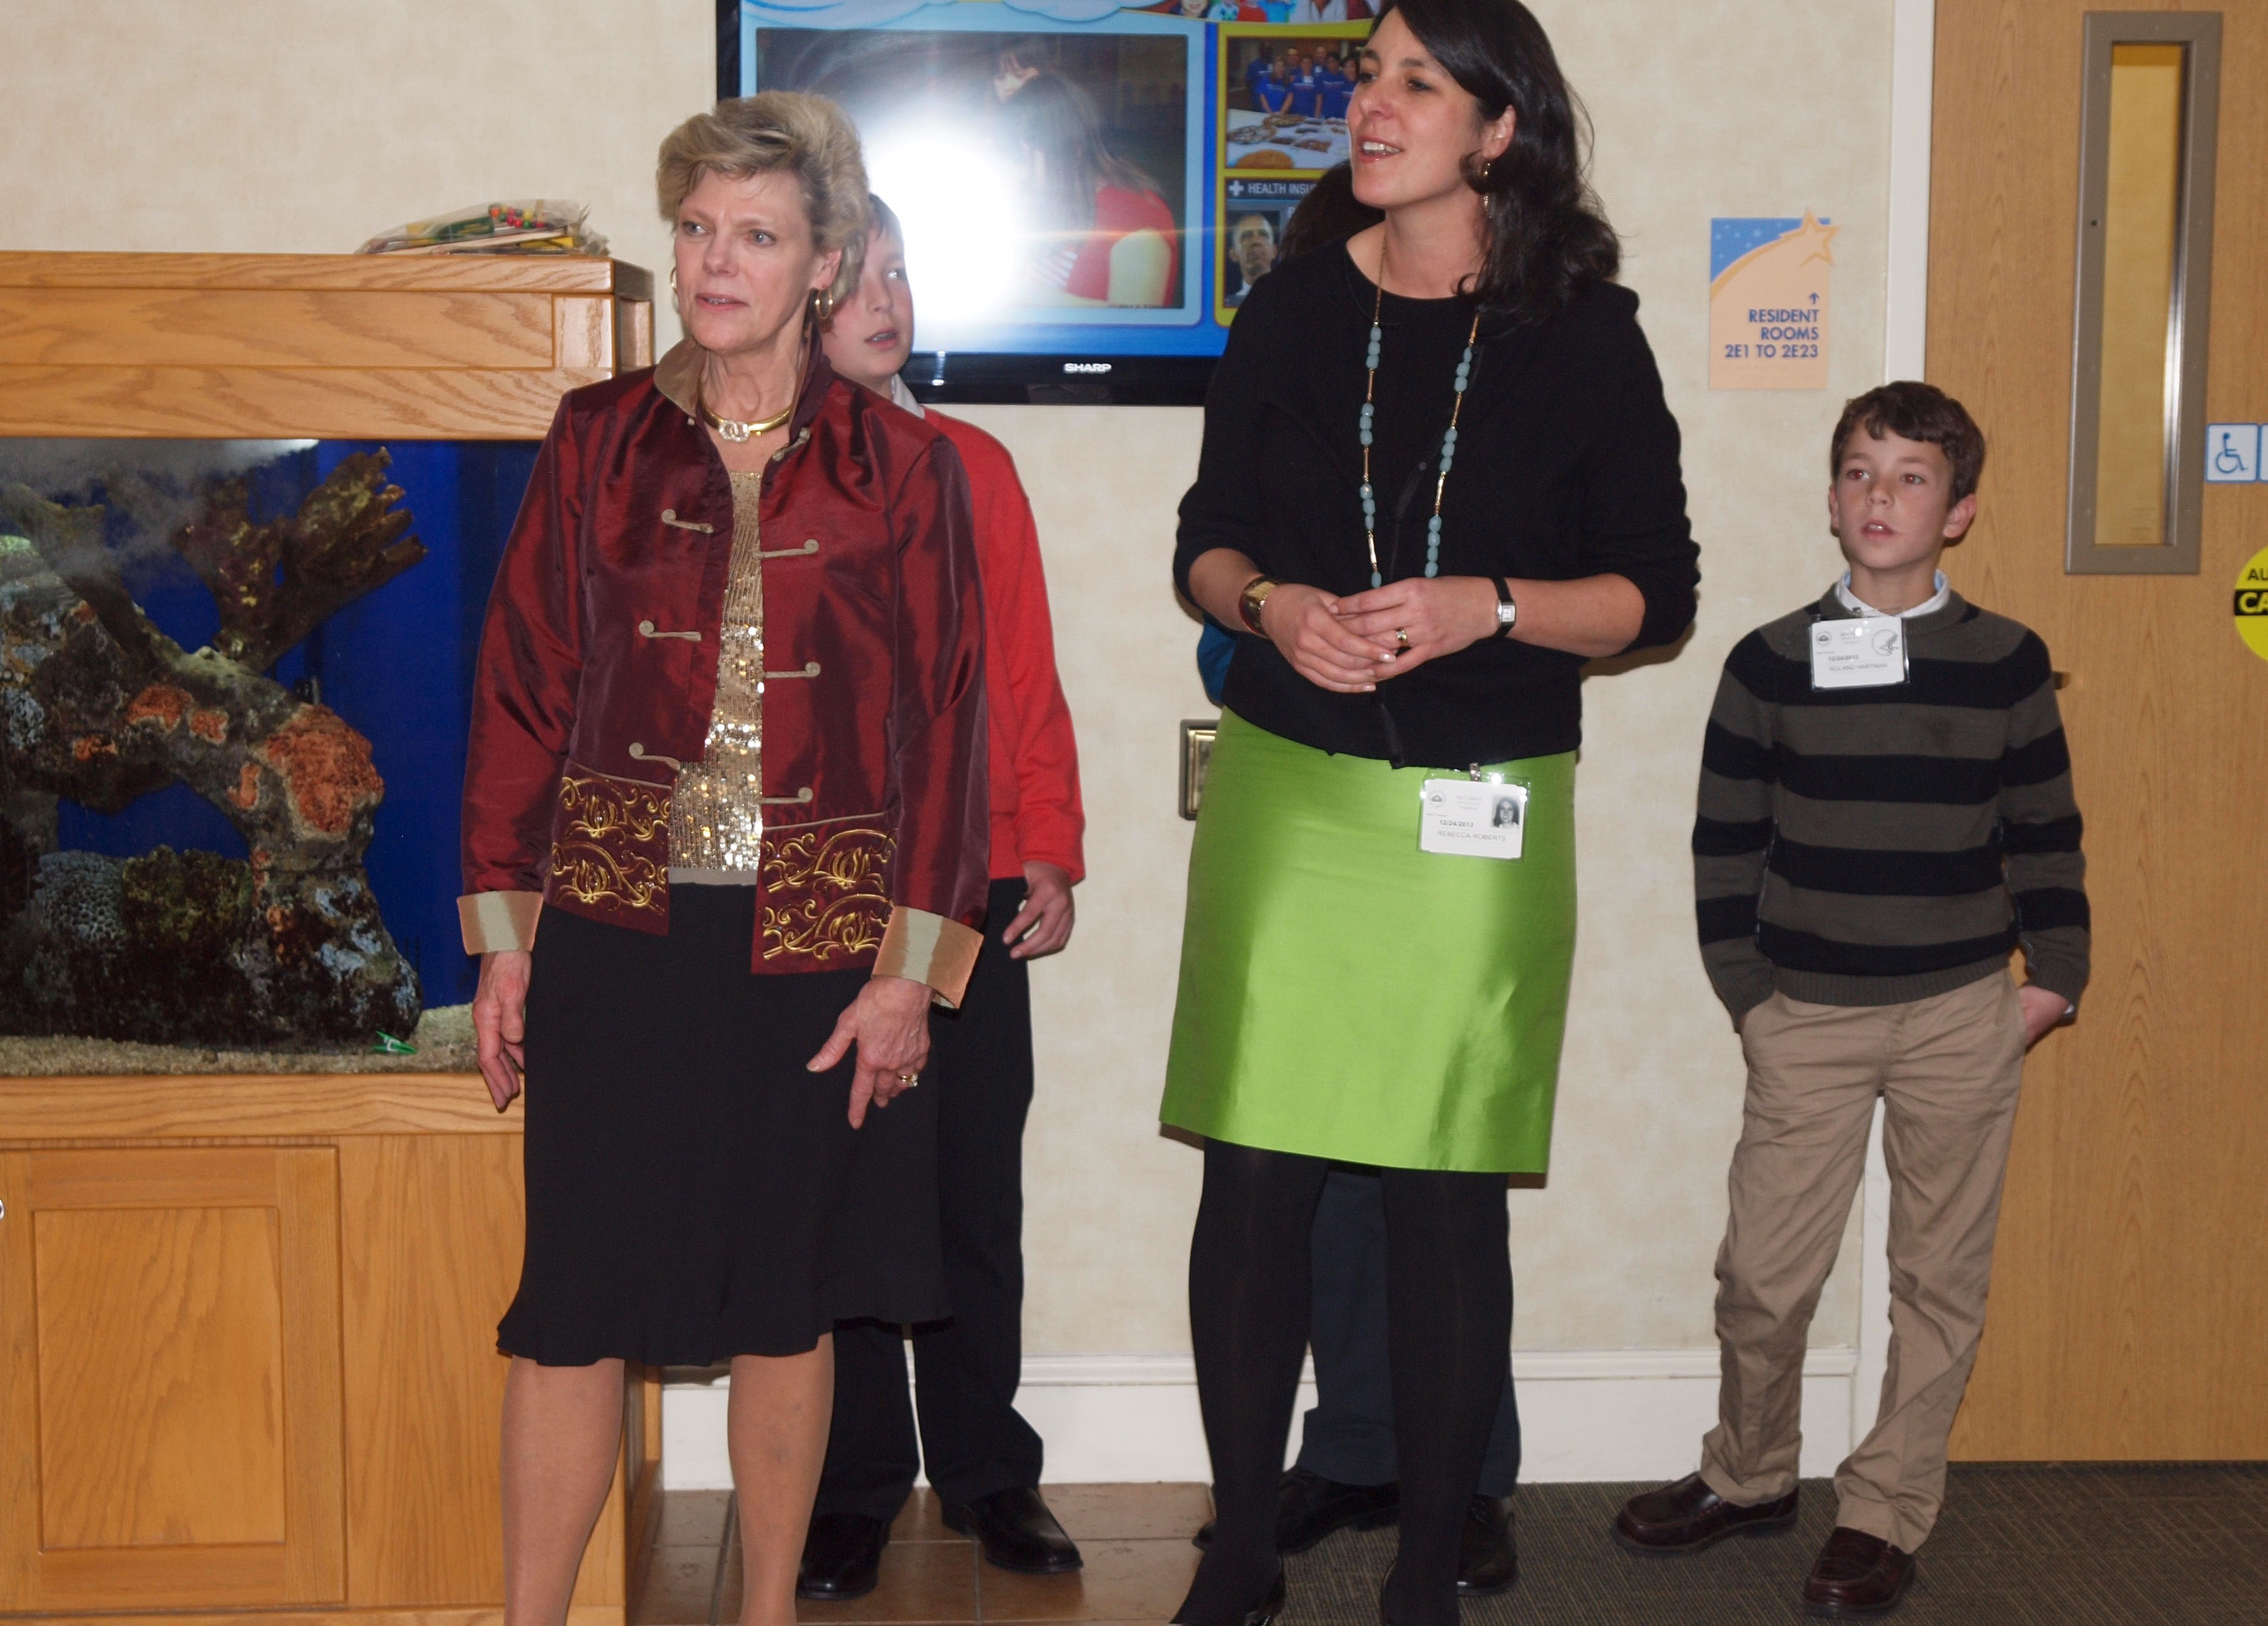 Inn board member Cokie Roberts carols for residents with her family